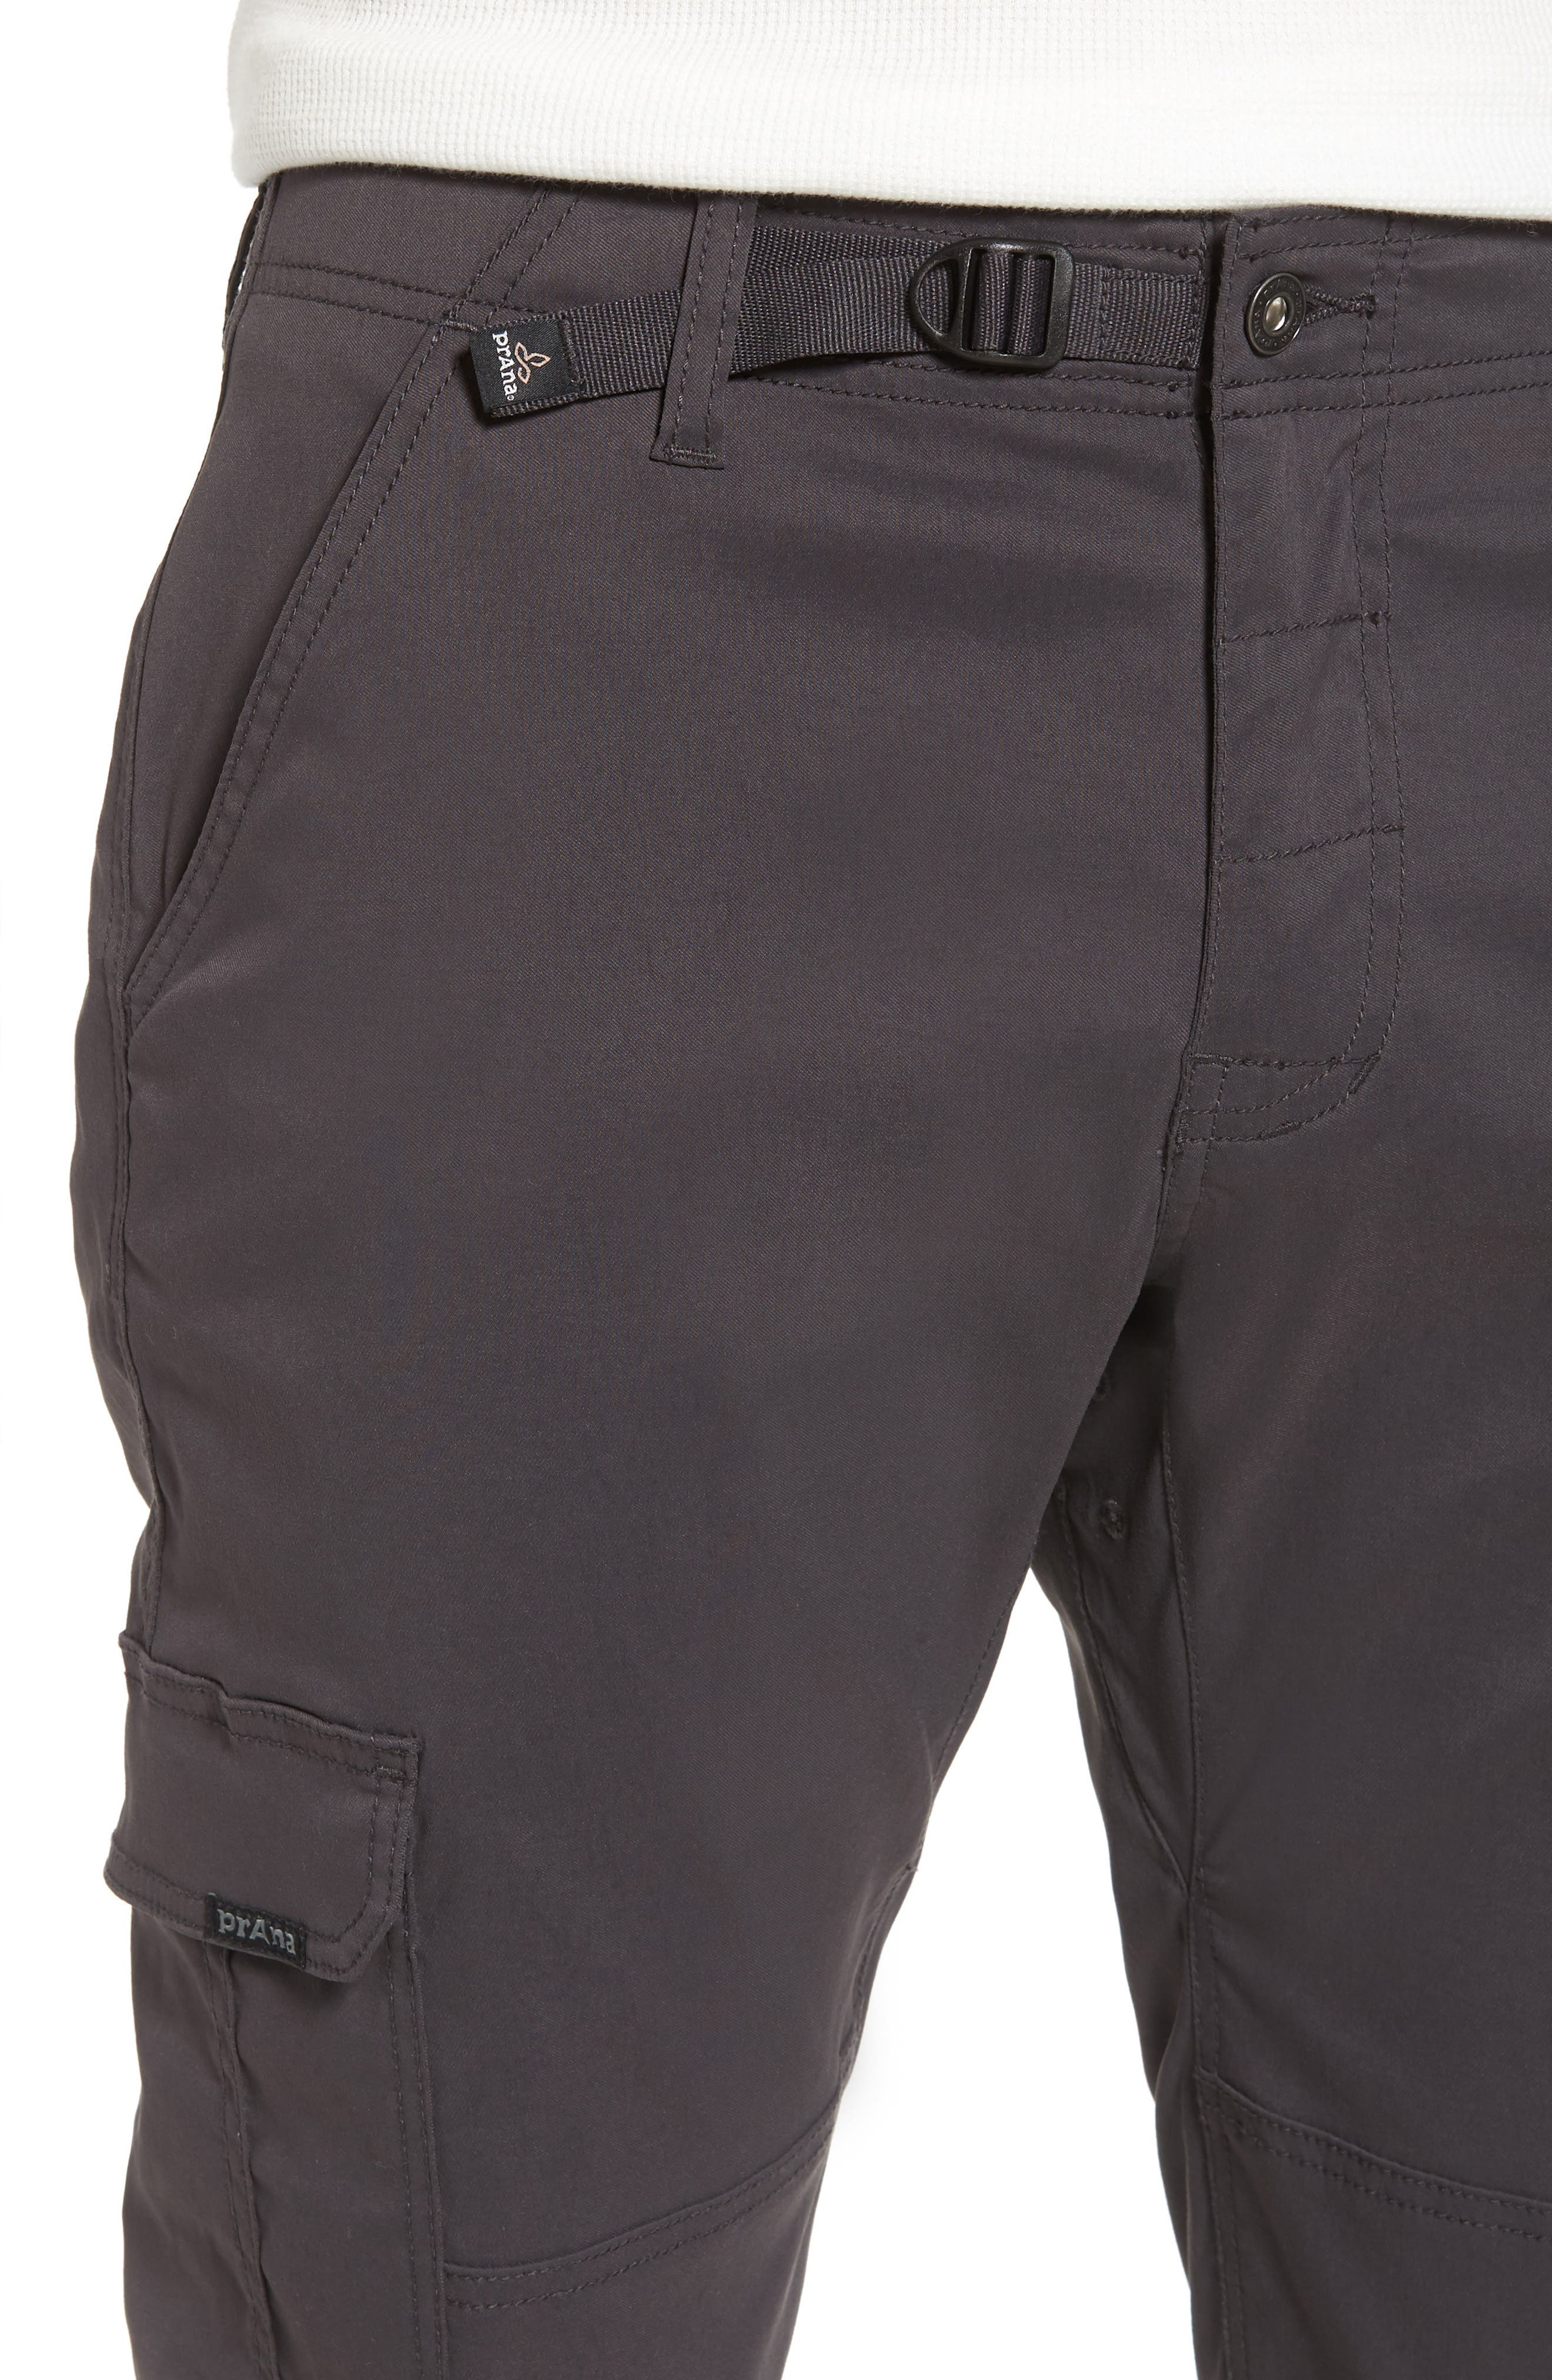 Zion Water Repellent Stretch Jogger Pants,                             Alternate thumbnail 4, color,                             Charcoal